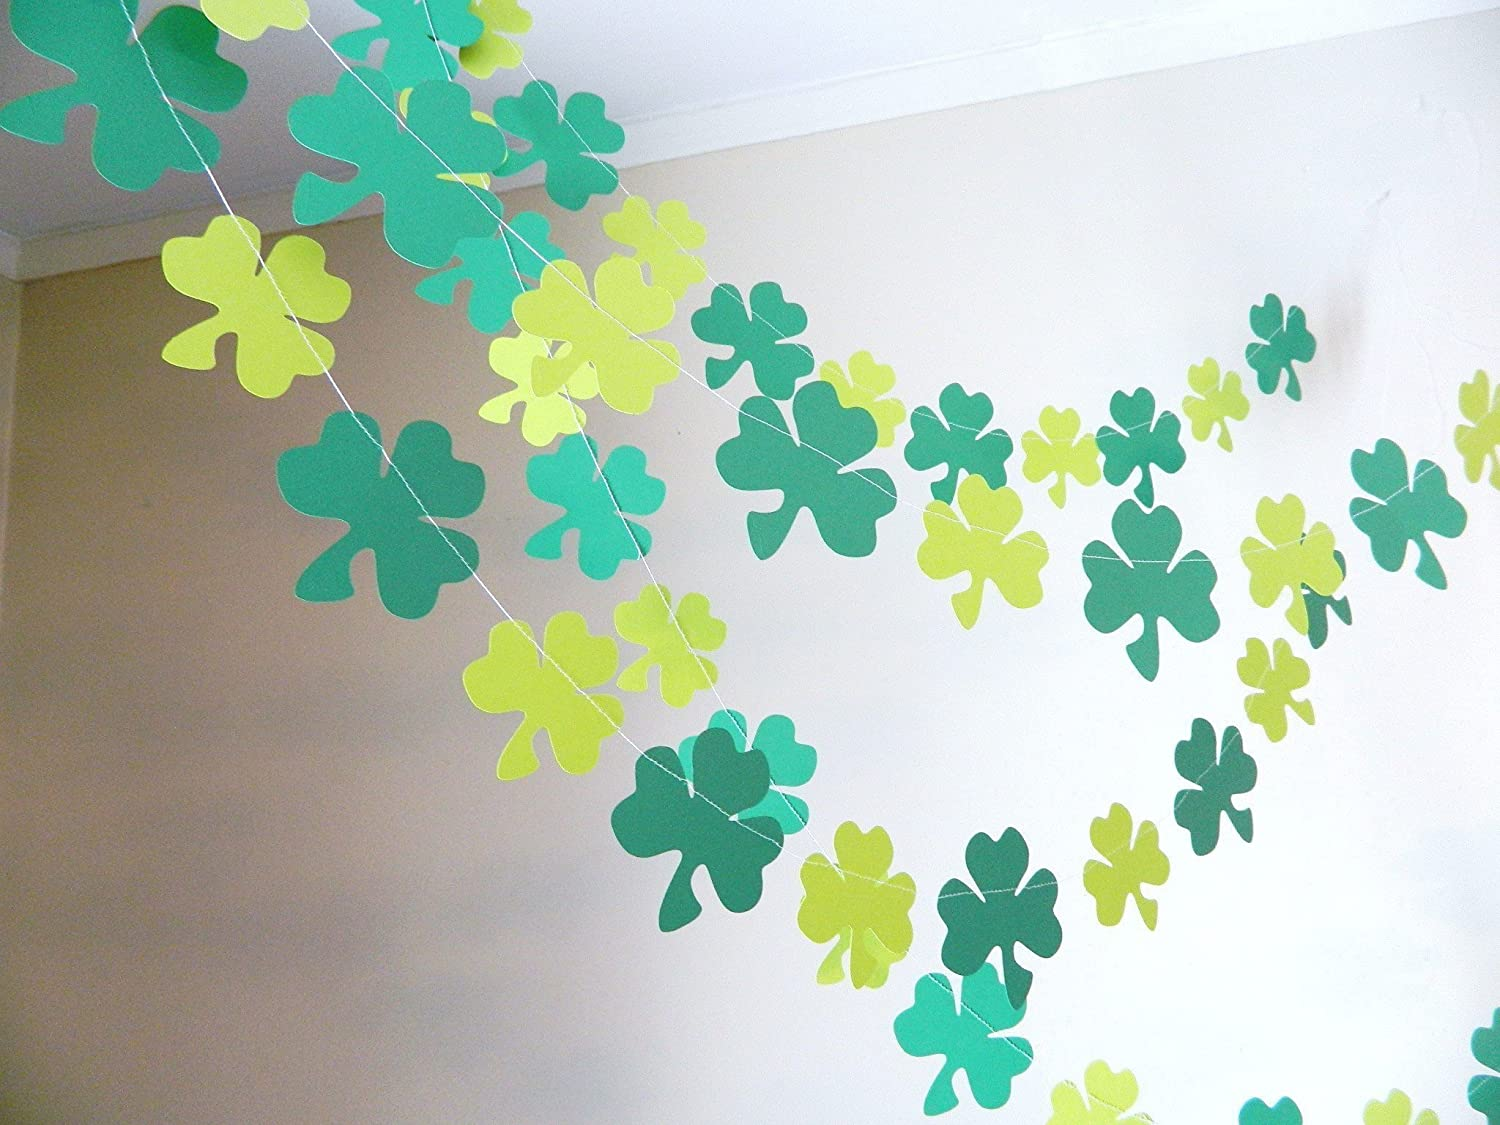 signs party bulk company beistle fun s supplies the st patrick patricks lg decor day products decorations photo